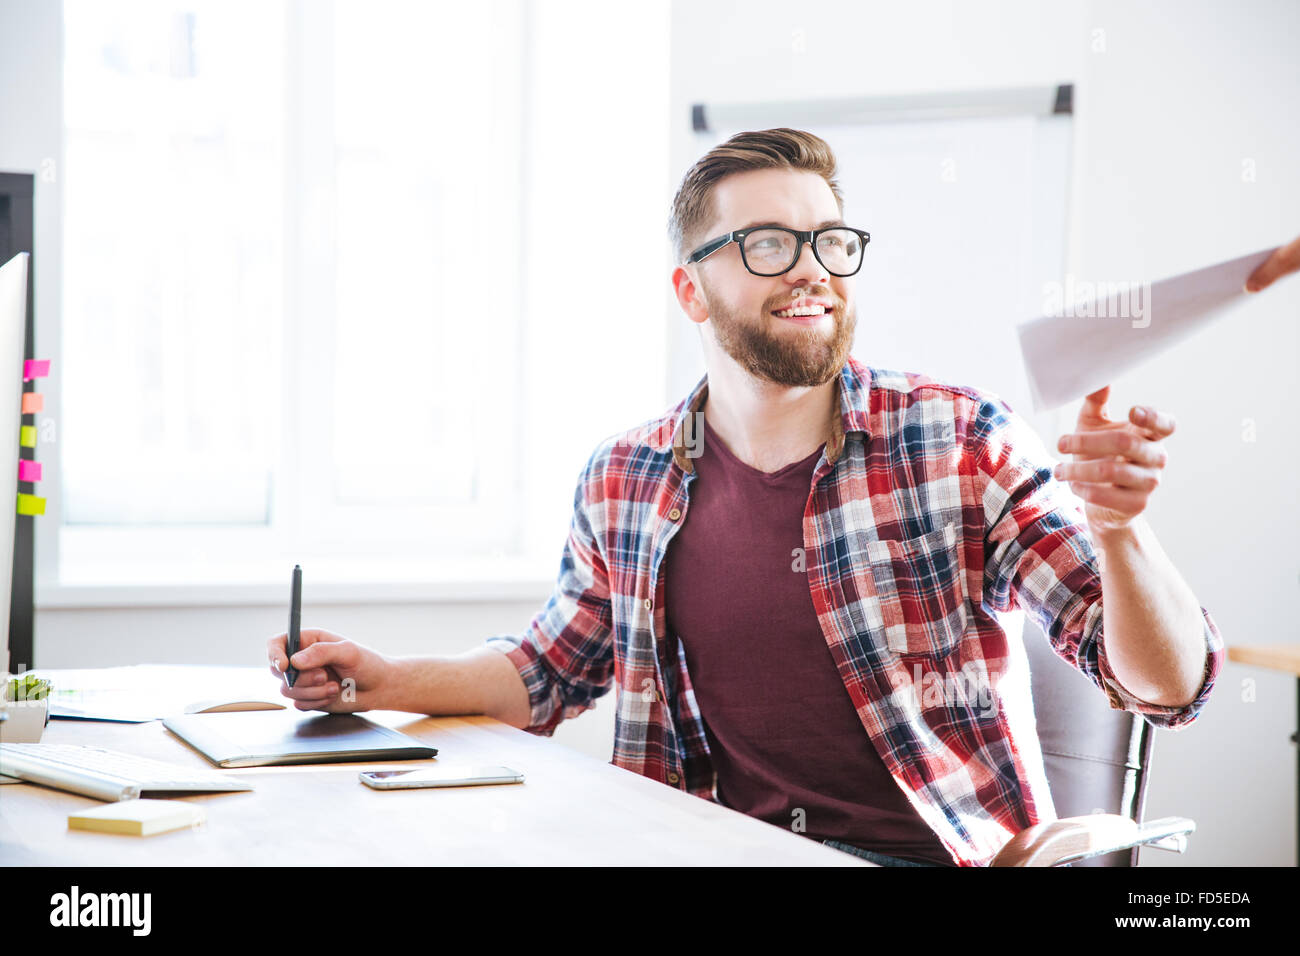 Happy handsome bearded designer using graphic pen tablet with stylus and receiving blueprints - Stock Image